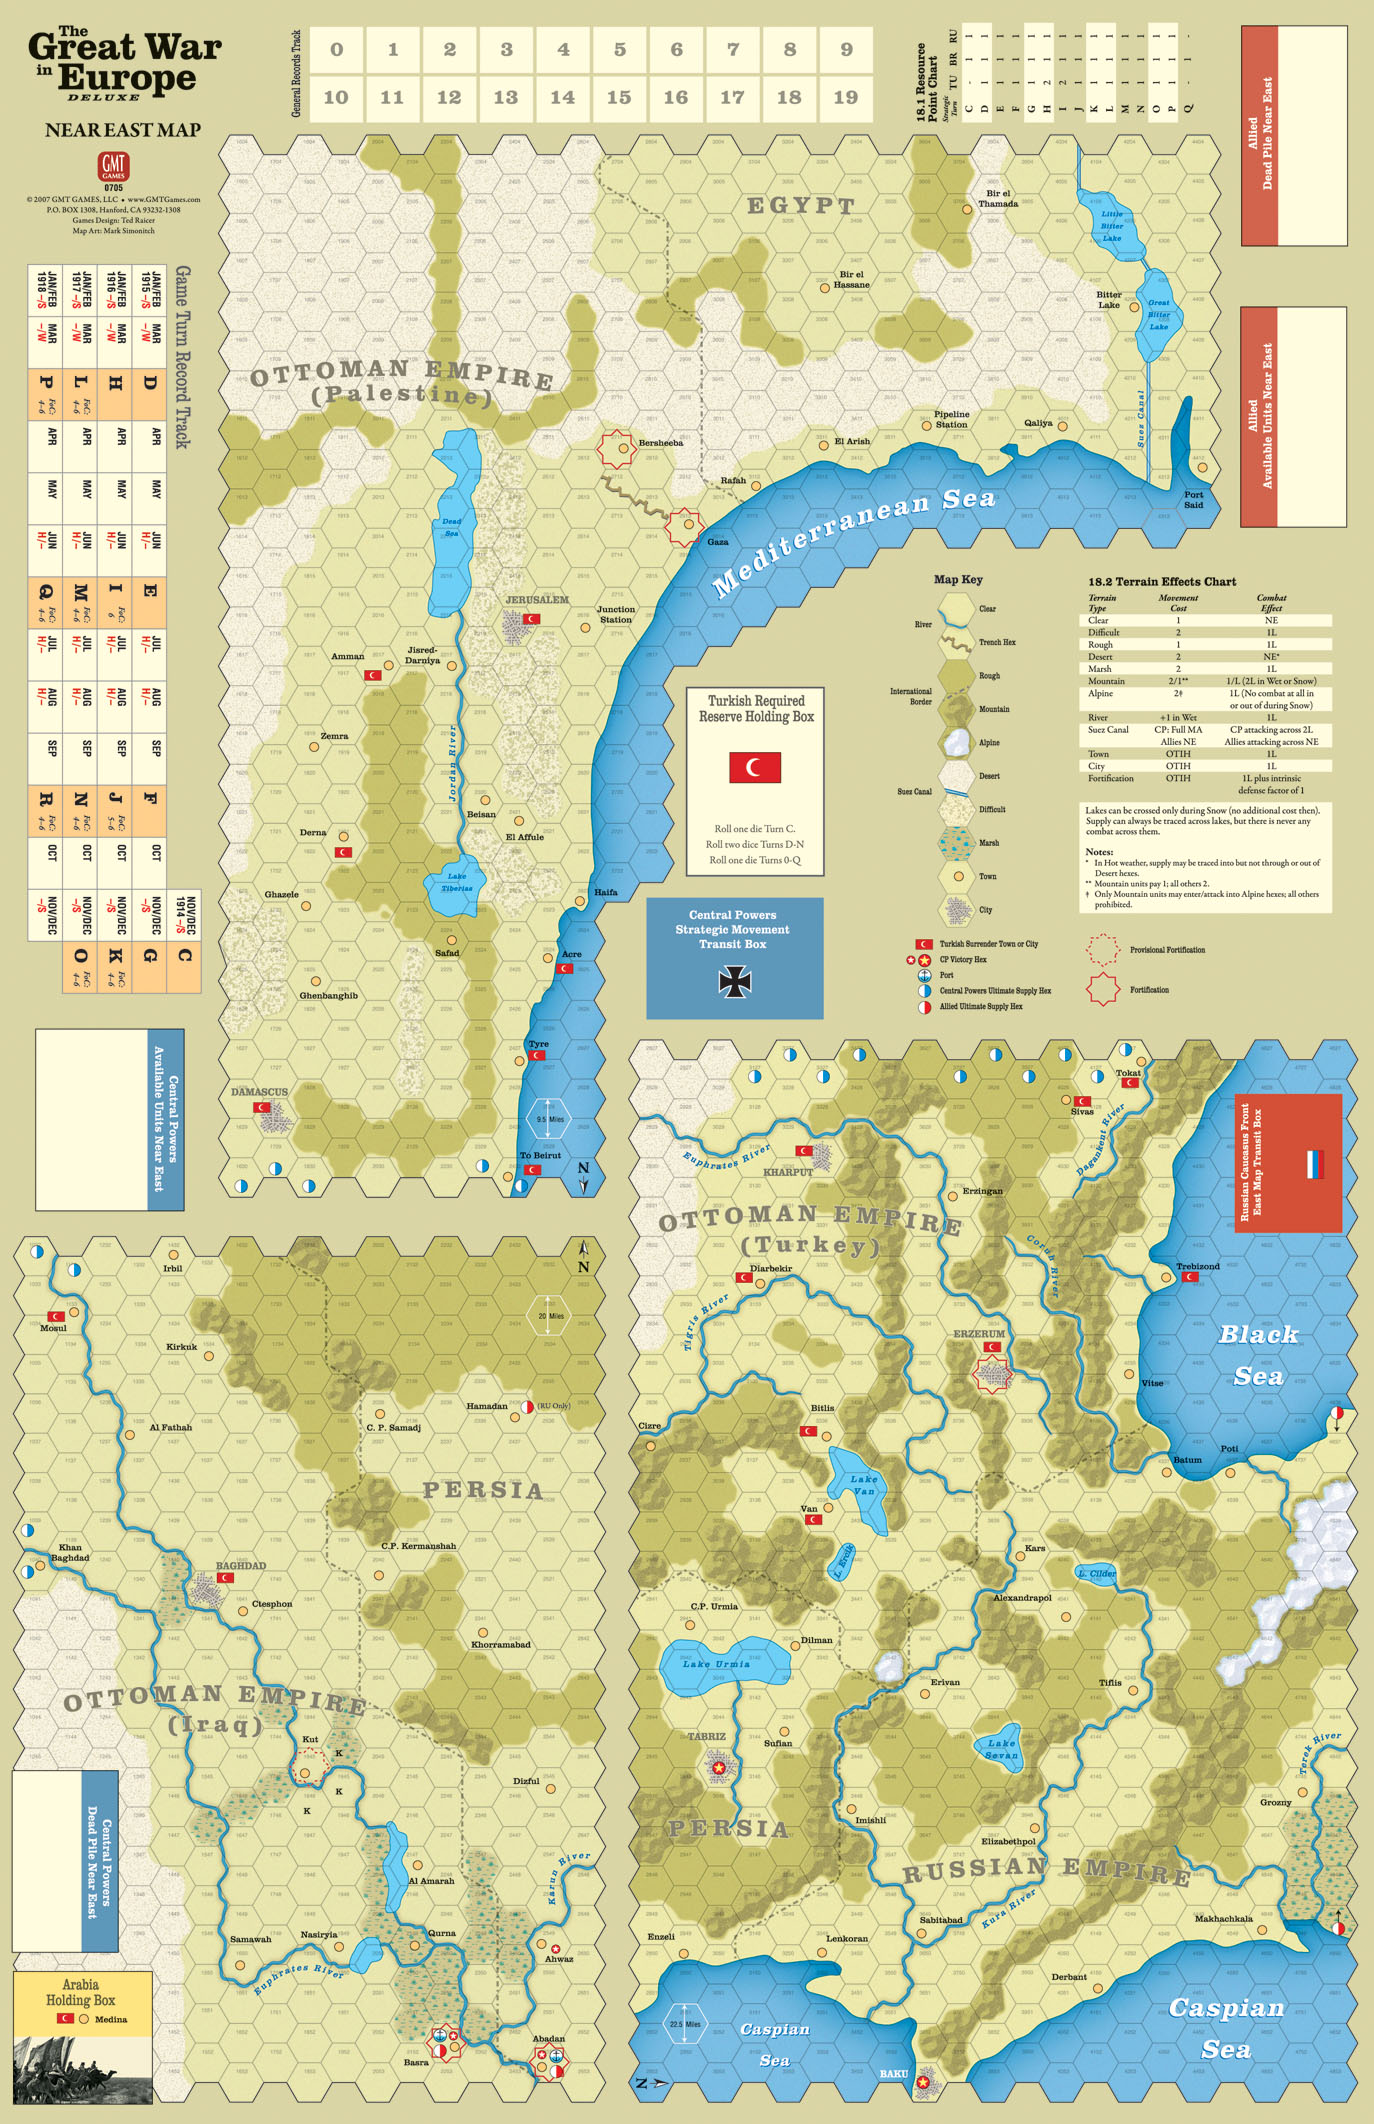 Gmt games project 500 near east map 704 kb nvjuhfo Image collections